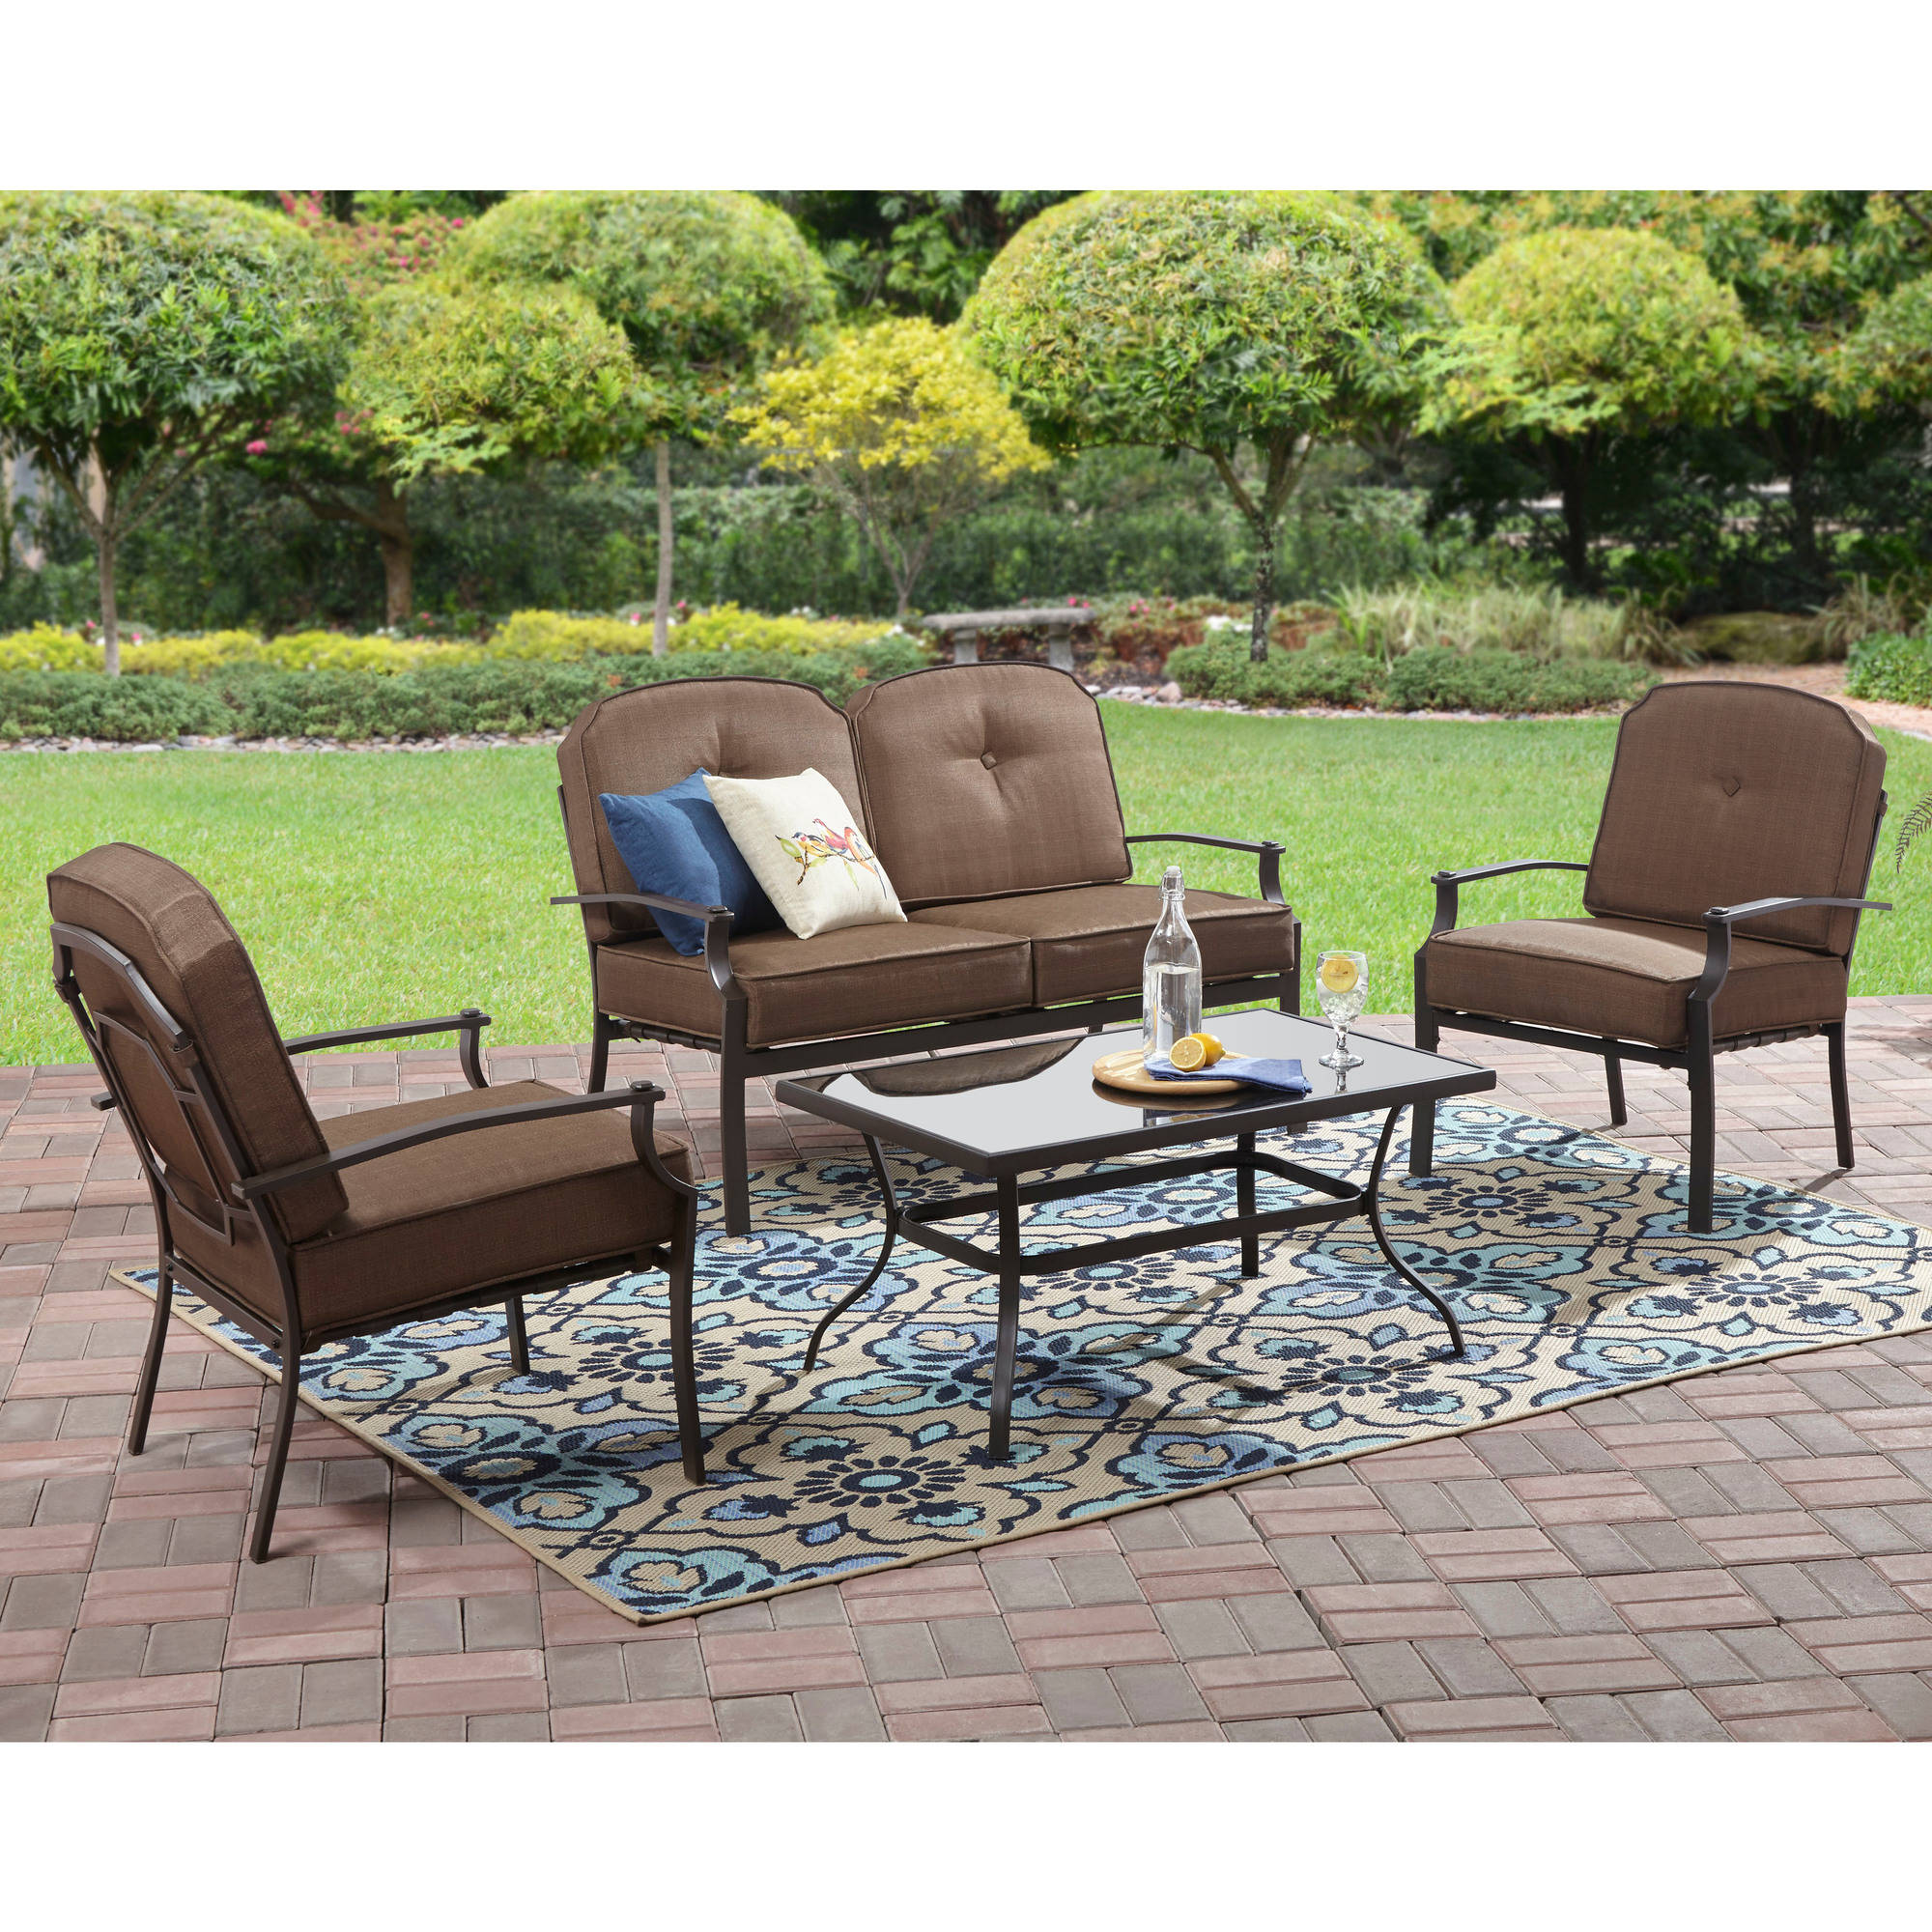 Mainstays wentworth 4 piece patio conversation set seats 4 walmart com